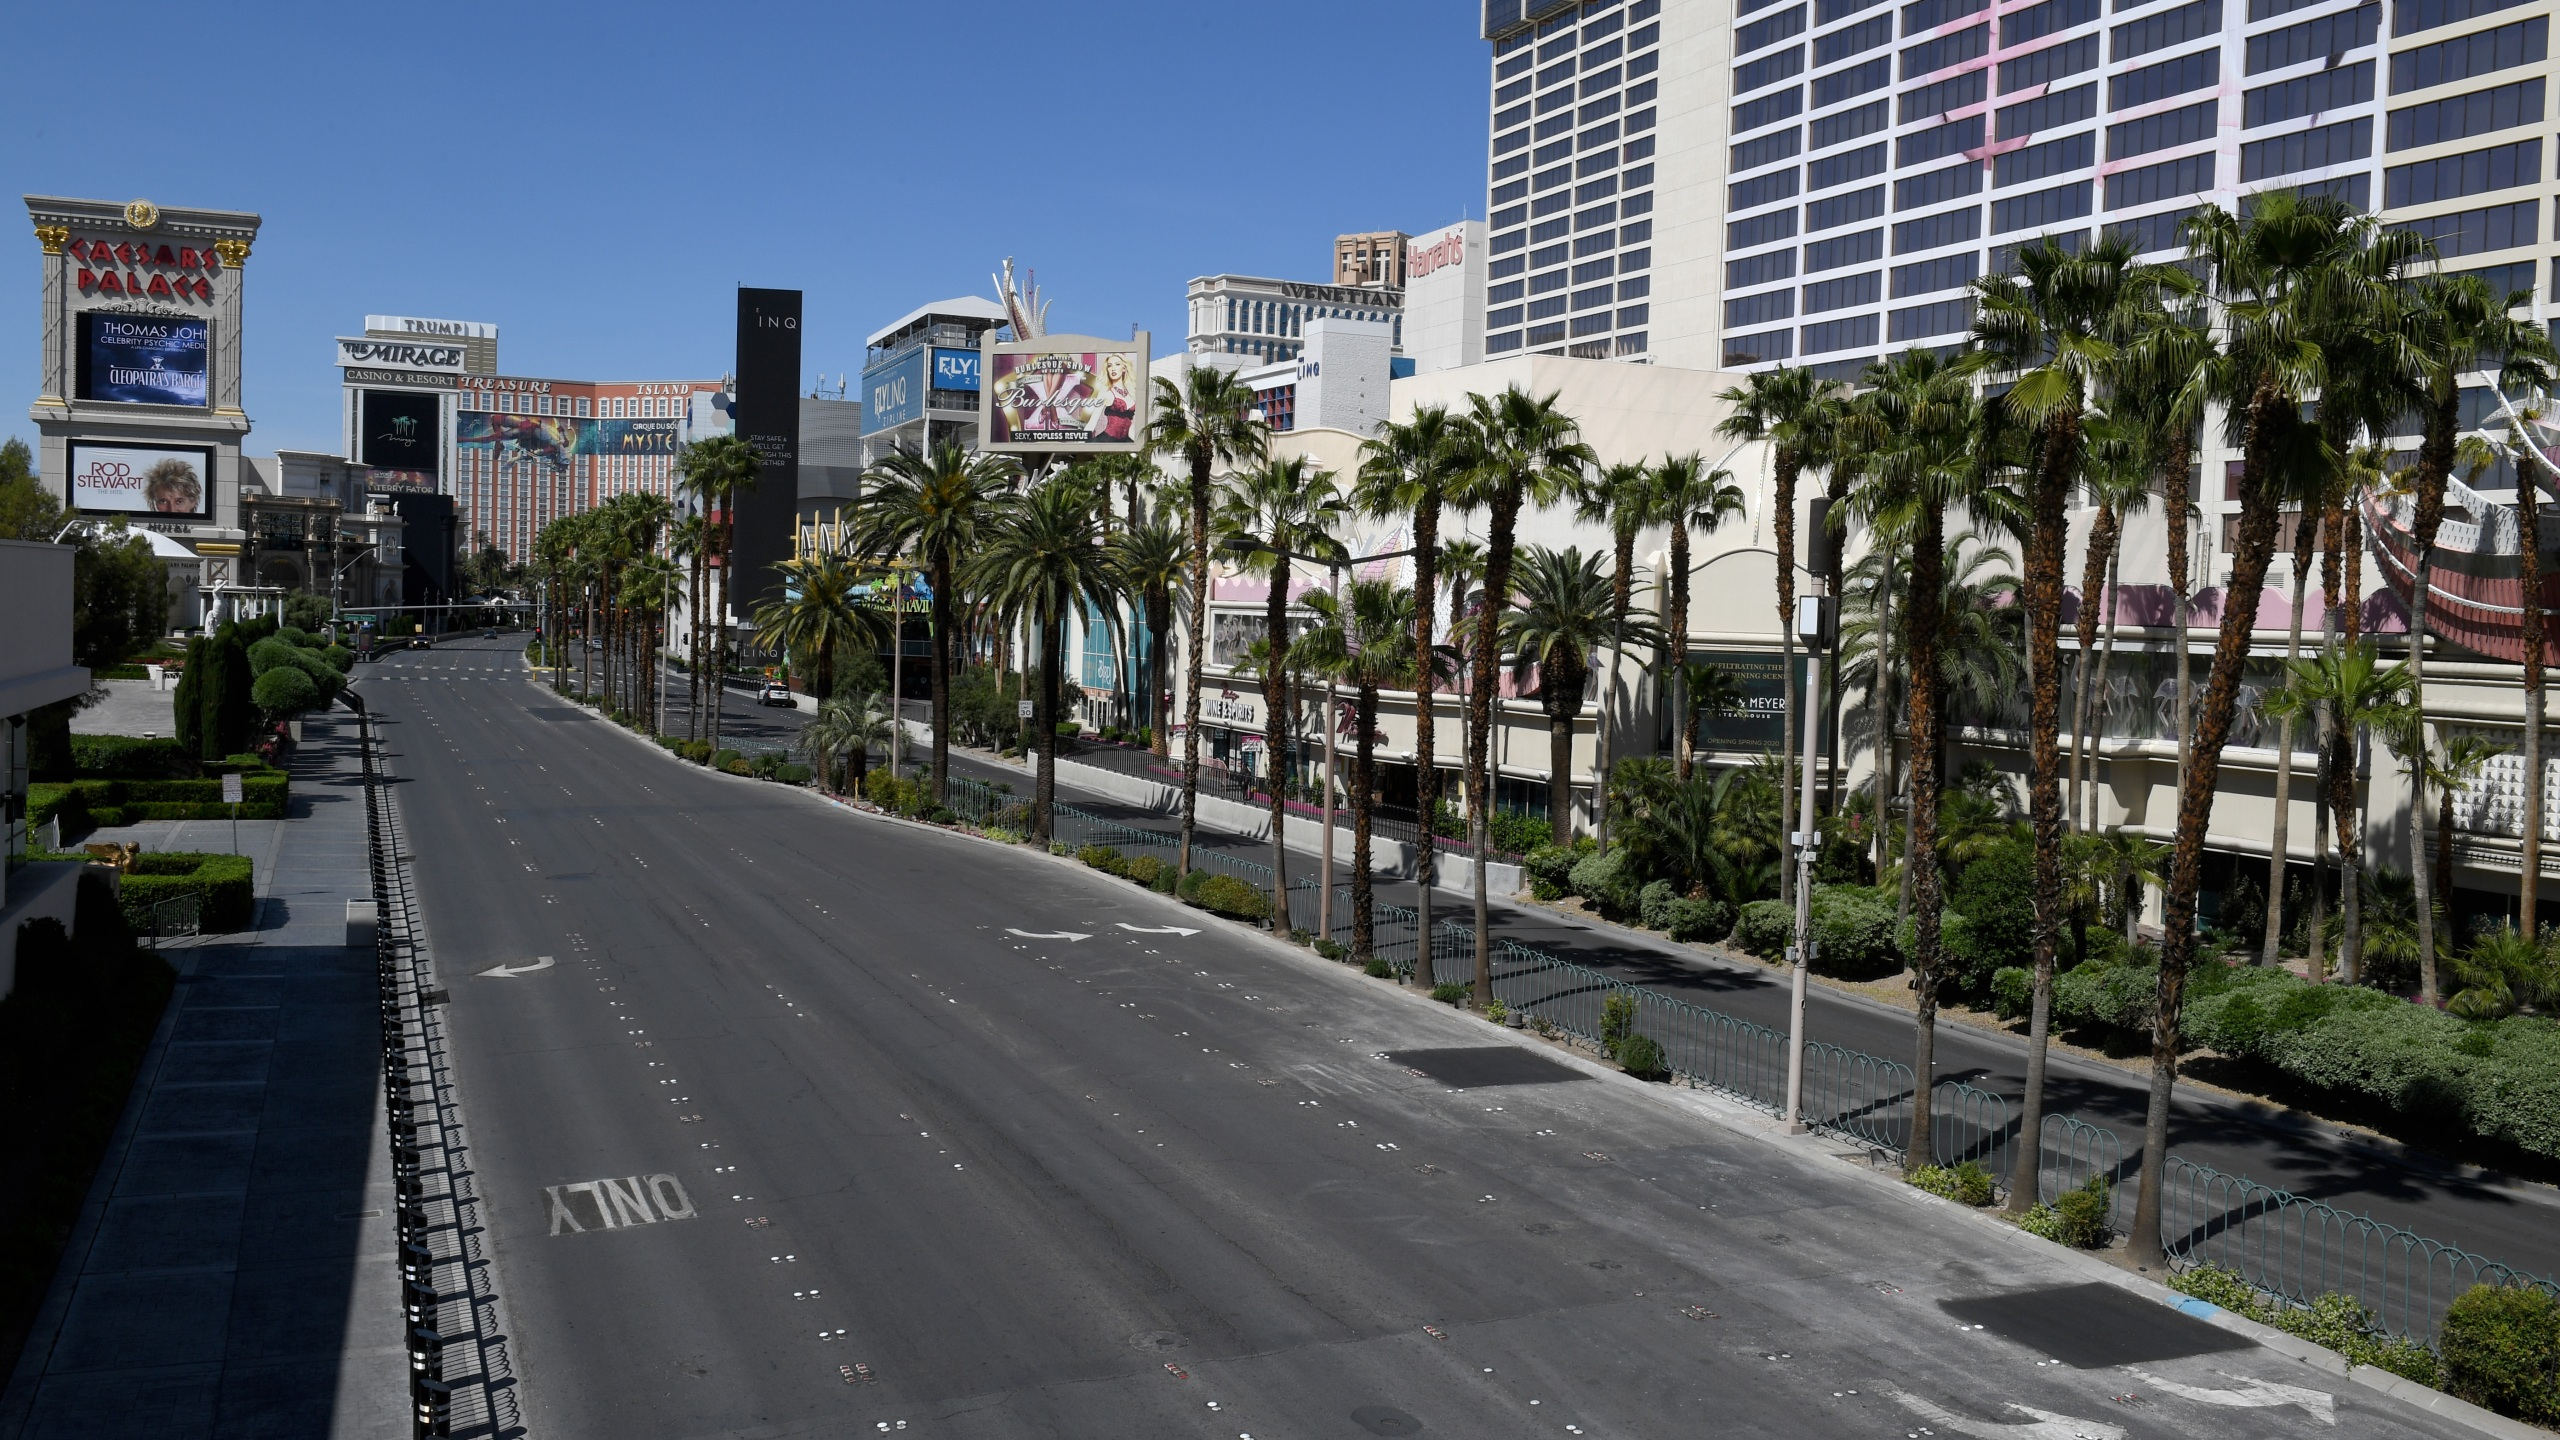 A view of the Las Vegas Strip between Caesars Palace and Flamingo Las Vegas shows almost no vehicle or pedestrian traffic as the coronavirus continues to spread across the U.S. on April 24, 2020. (Ethan Miller/Getty Images)